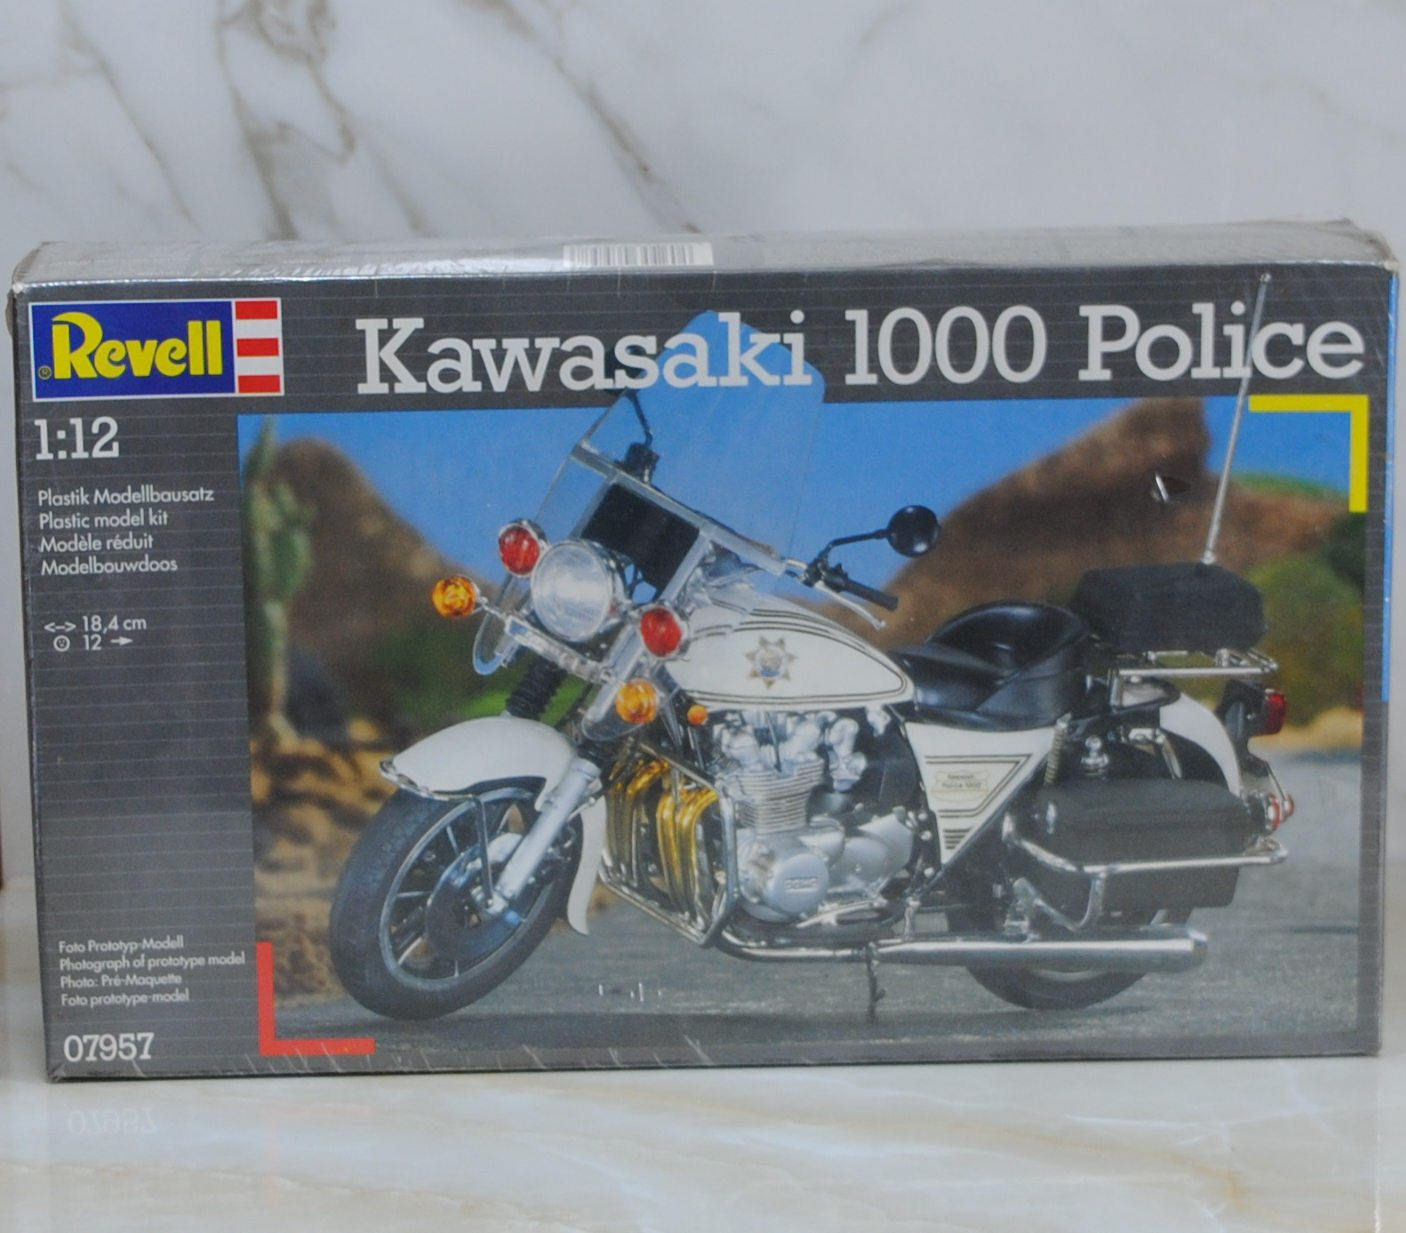 Vintage Kawasaki 1000 Police Motorcycle, Revell Model Kit